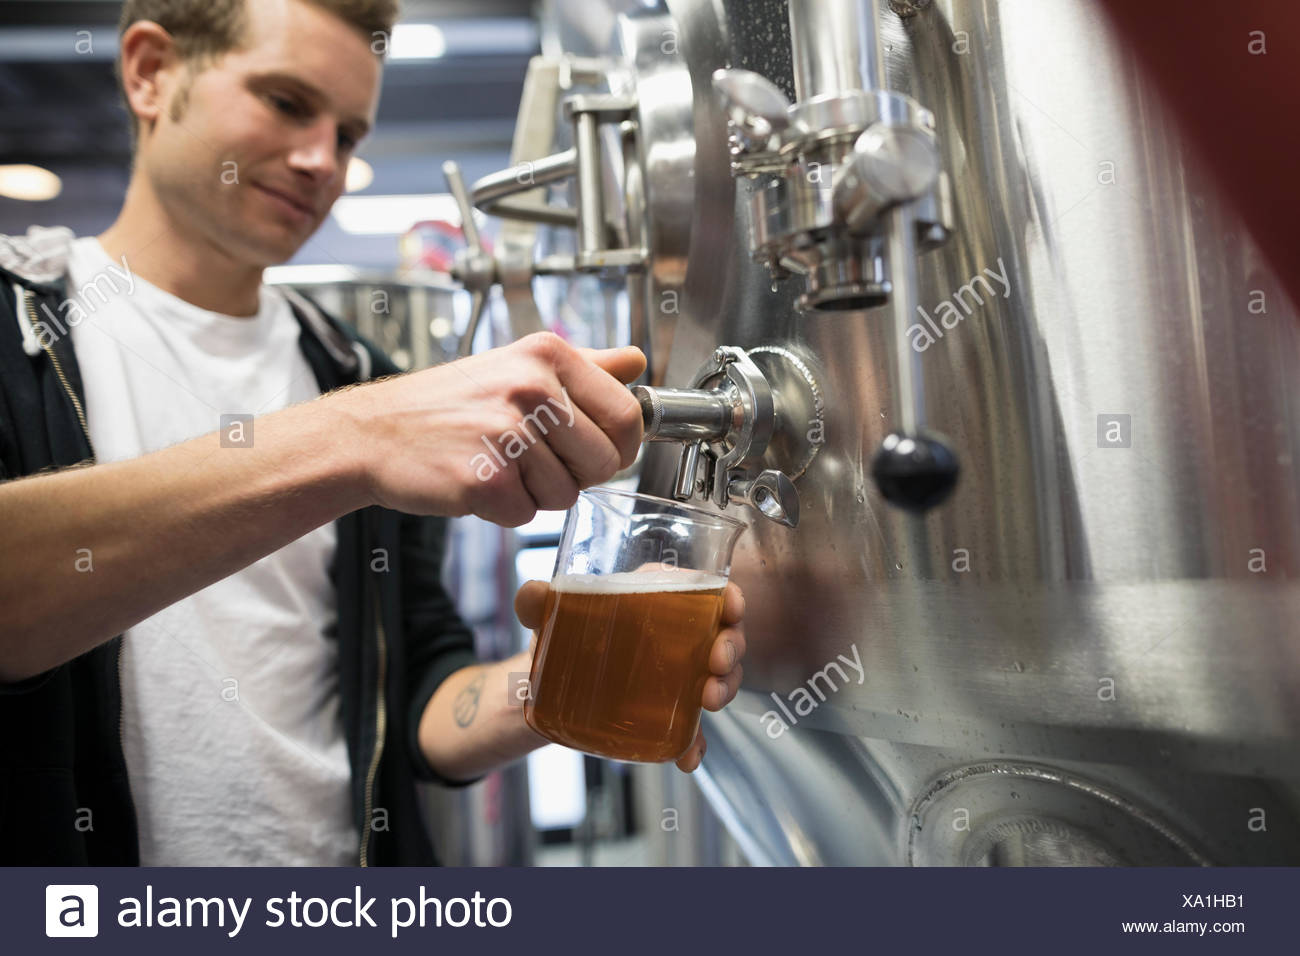 Male brewer pouring beer from vat into beaker in brewery - Stock Image